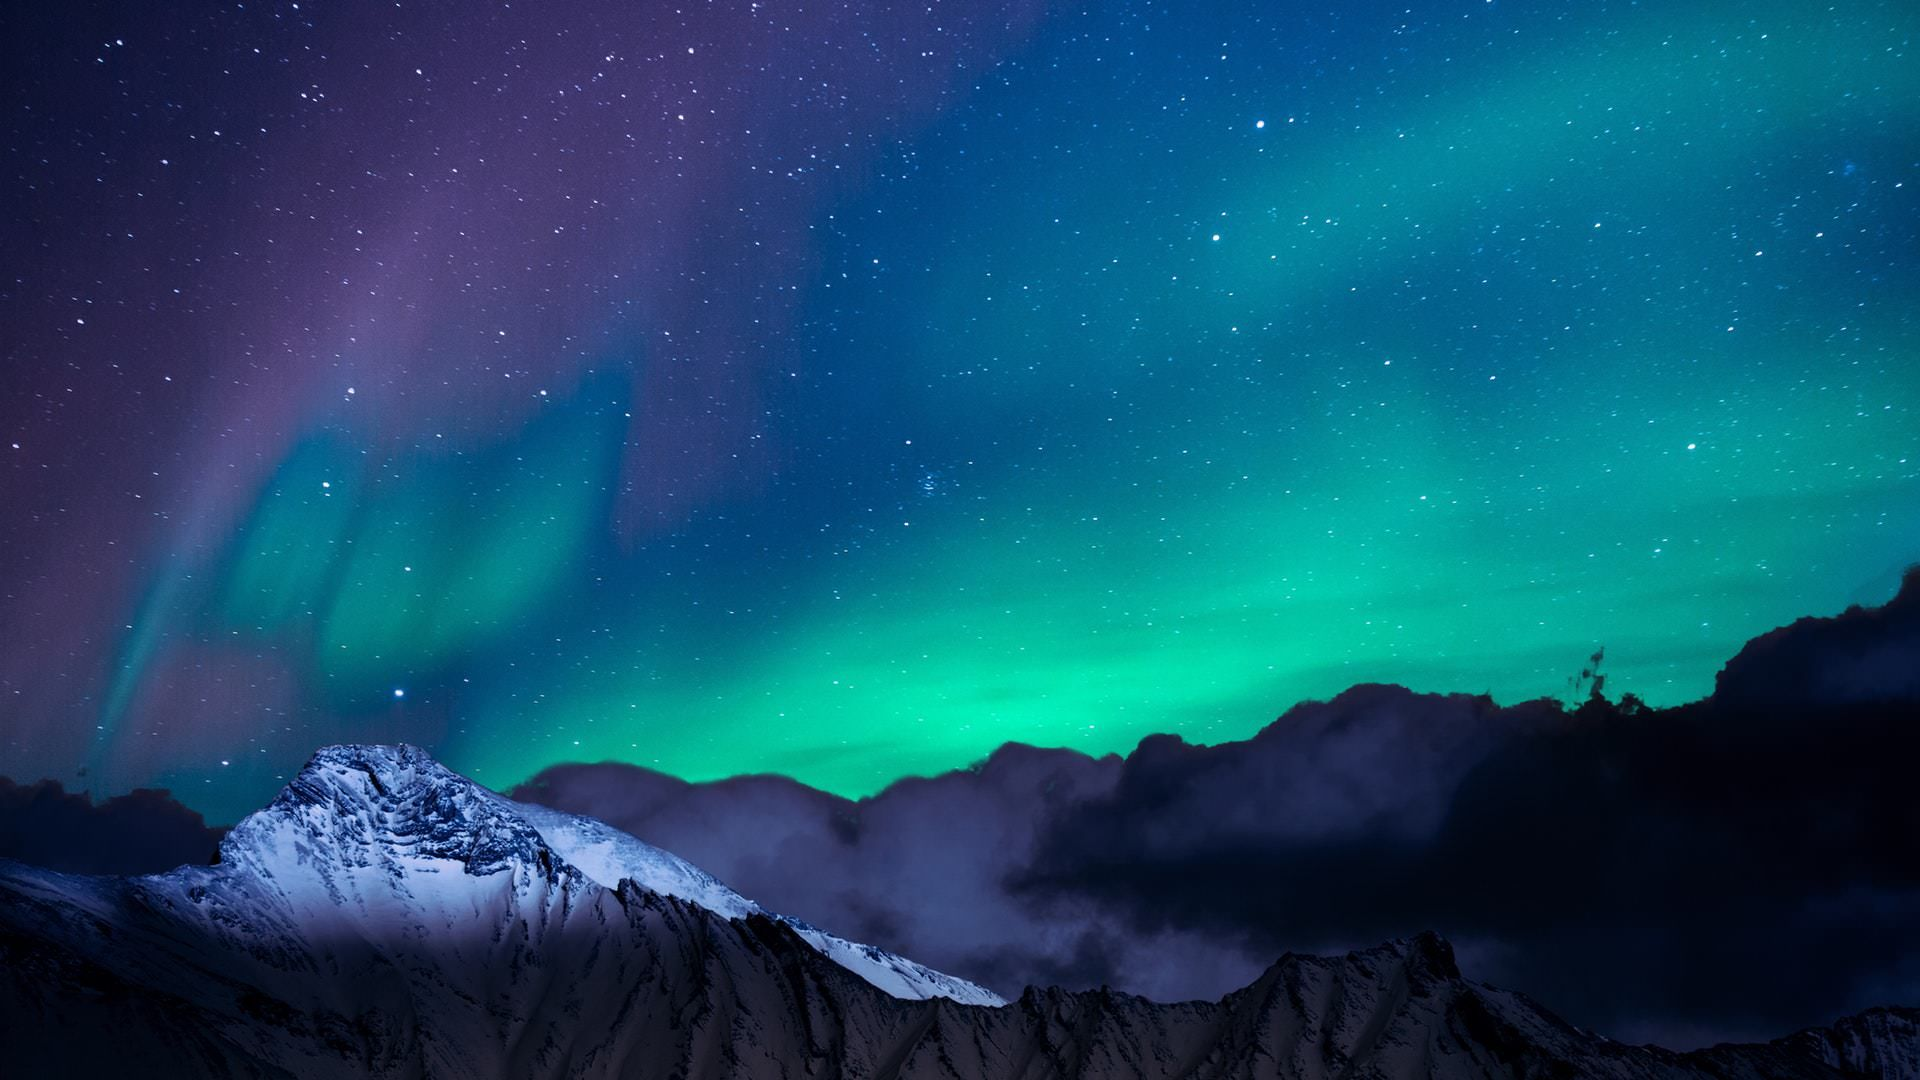 Aurora Australis 1920x1080 Need Trendy Iphone7 Iphone7plus Case Check Out Https Ift Tt Background Hd Wallpaper Northern Lights Wallpaper Northern Lights